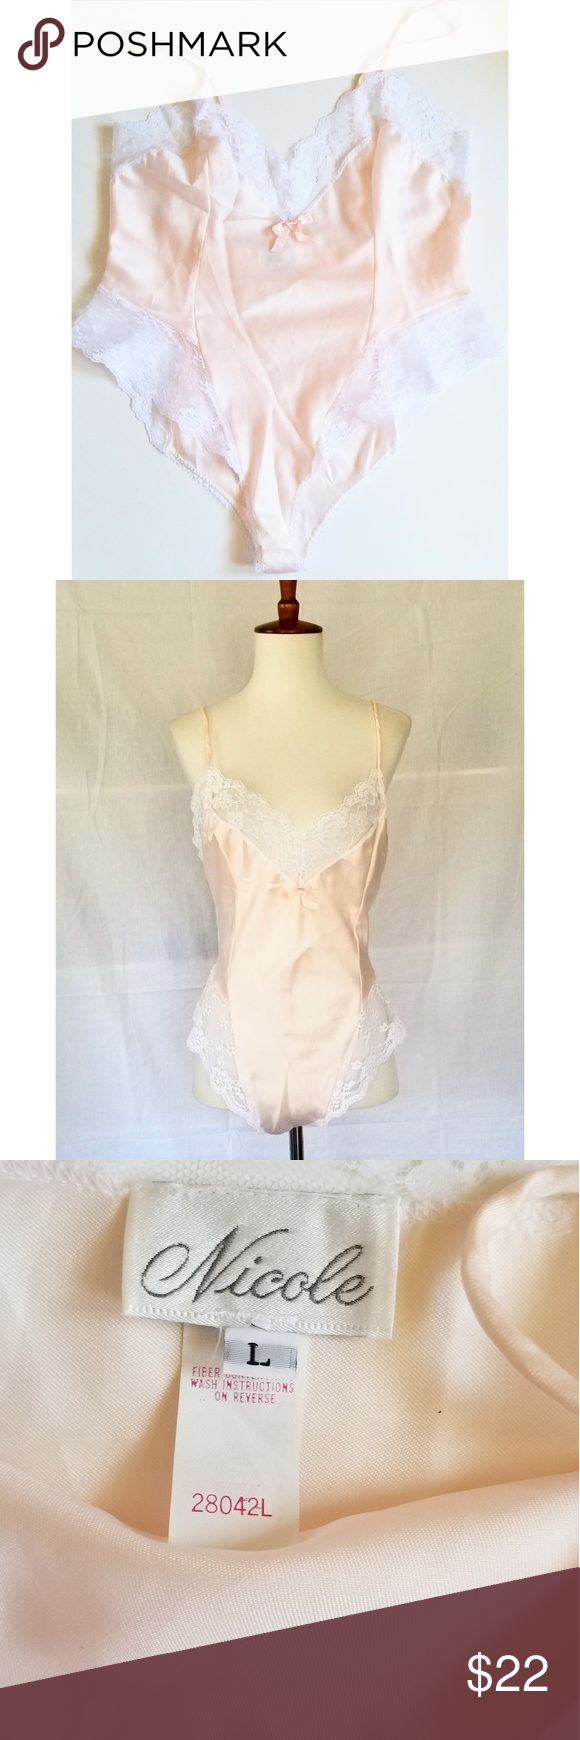 e0b1cb80e Vintage 80s french cut high cut teddy lingerie In like new condition this  slinky nylon and lace romper has very high cut thighs.